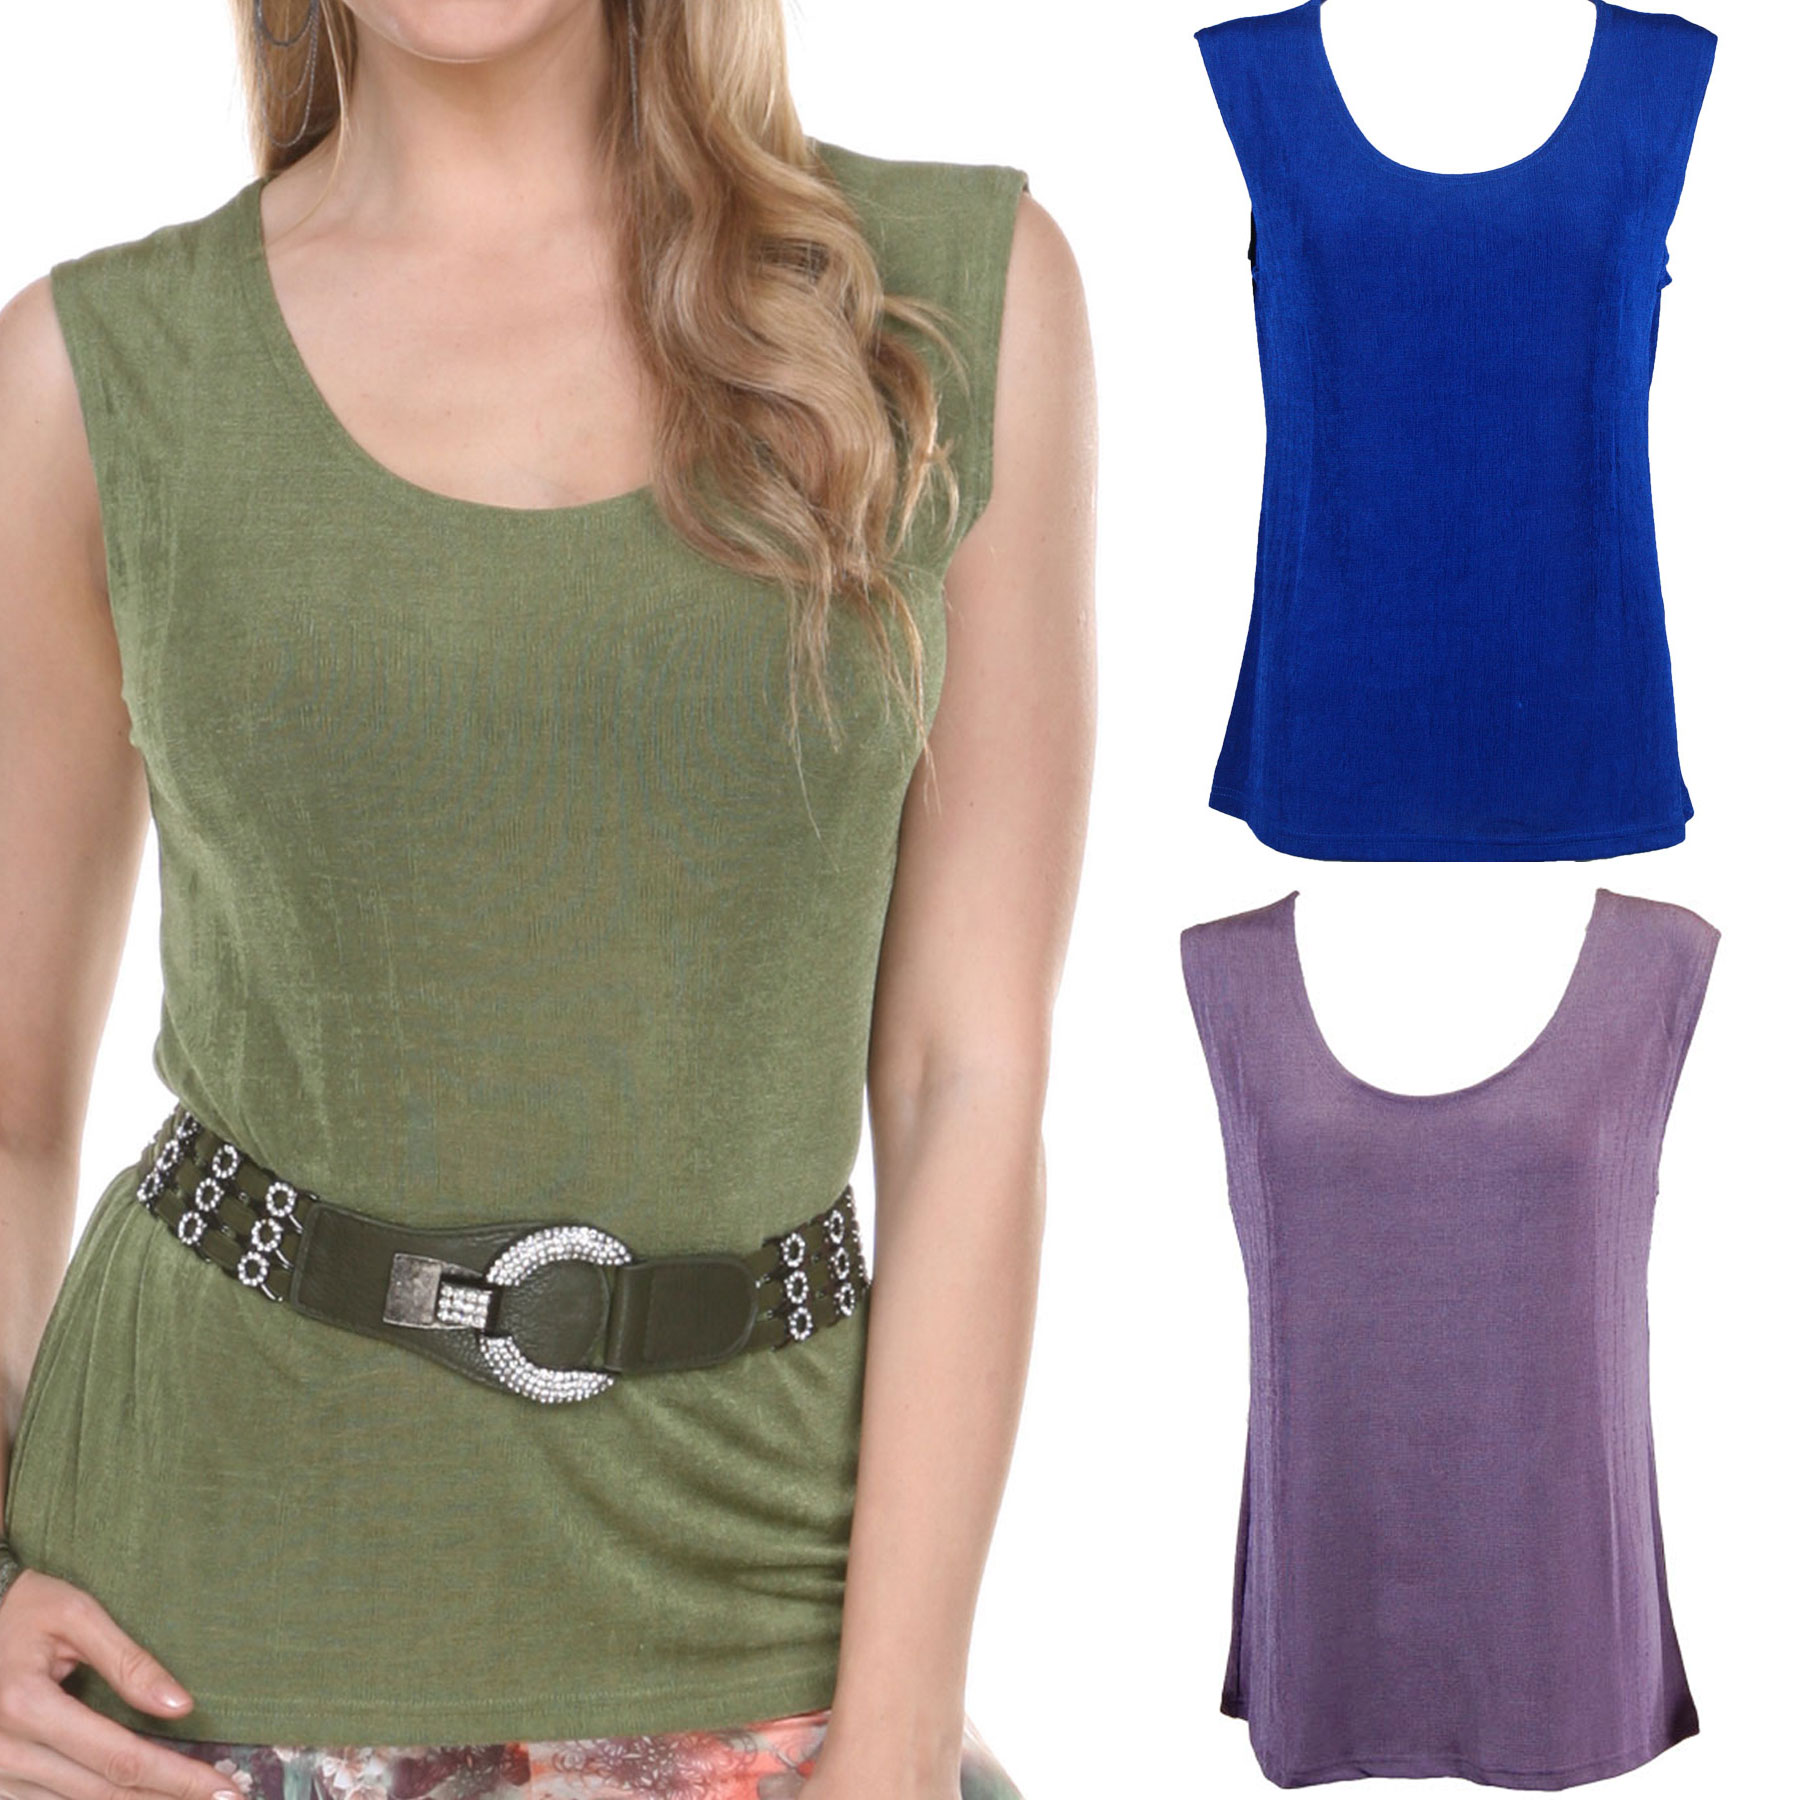 Slinky Travel Tops - Sleeveless*